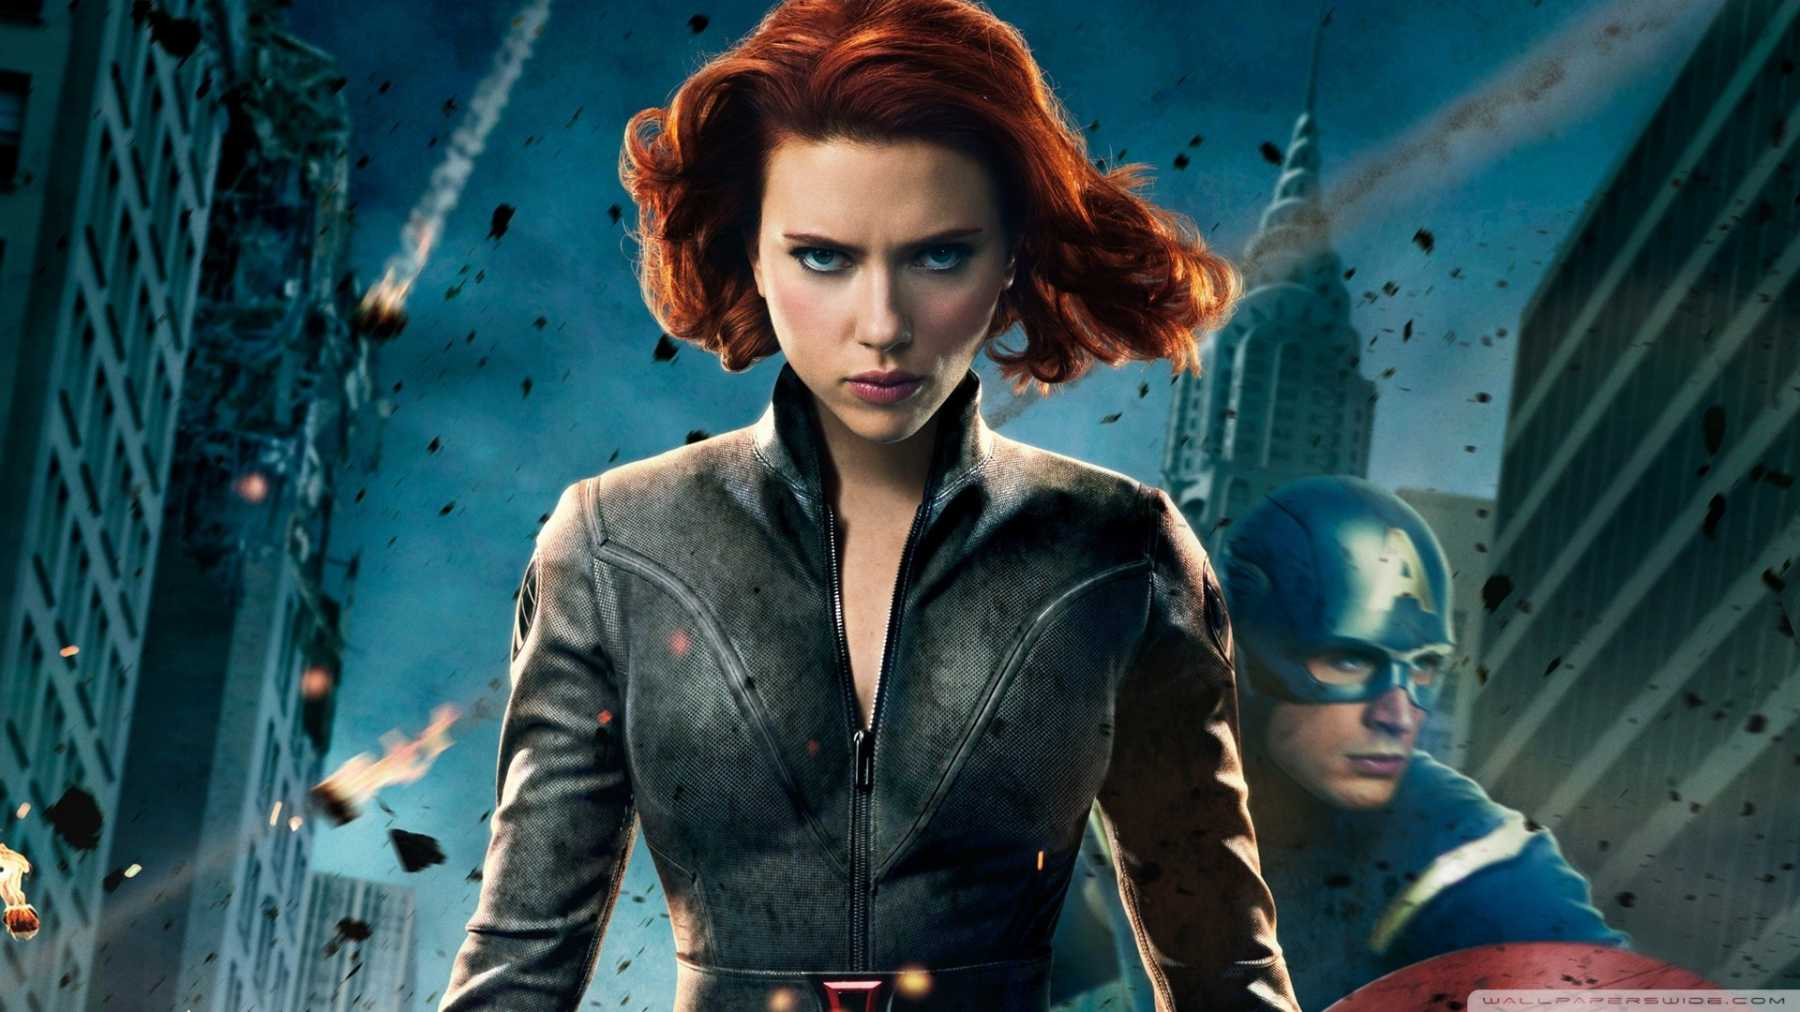 Scarlett Johansson Has Harsh Criticism For Superhero Films